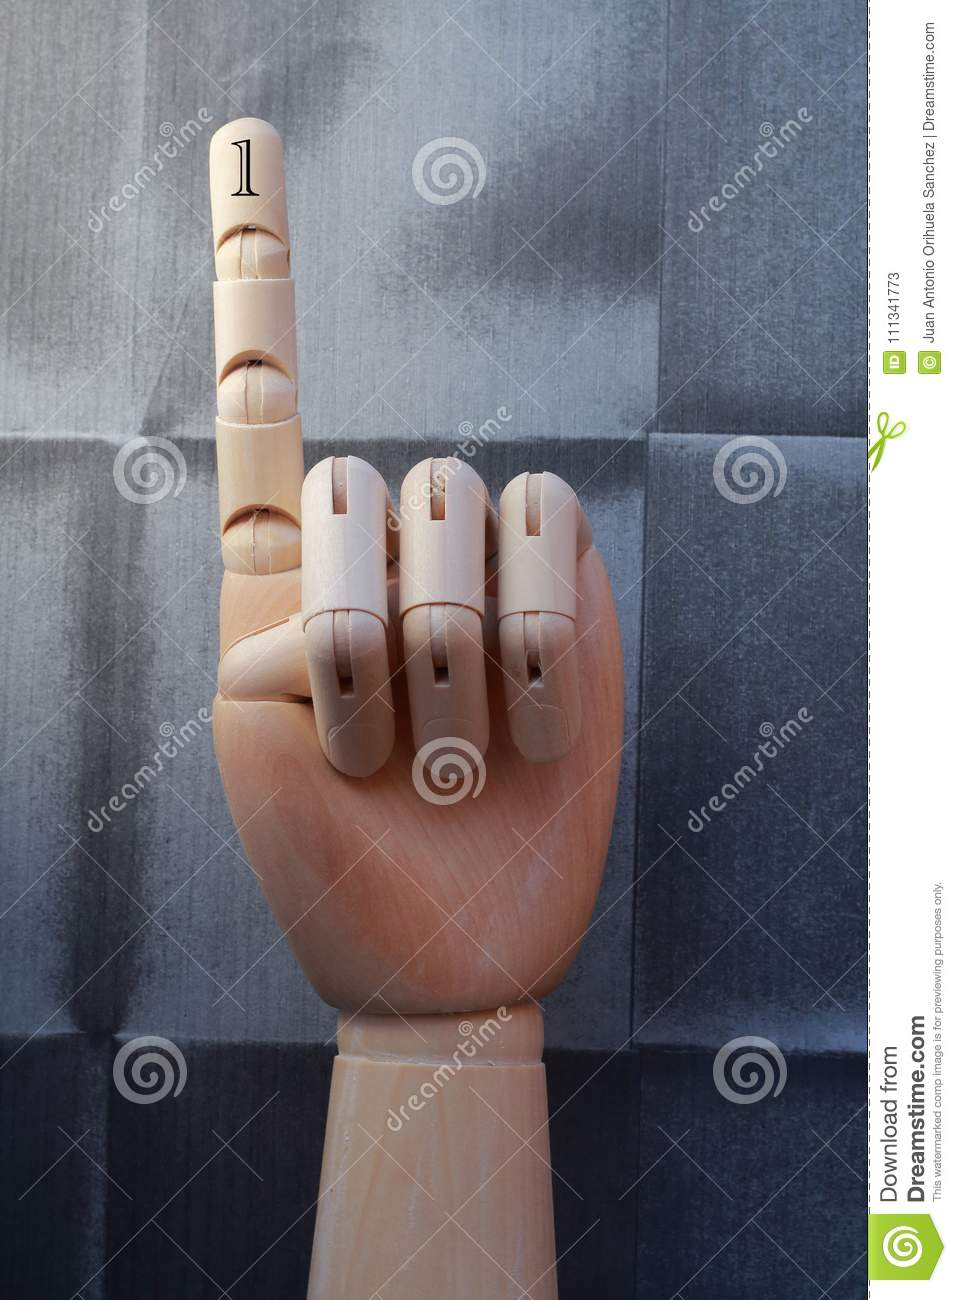 Wooden hand with one finger raised and numbered with number one